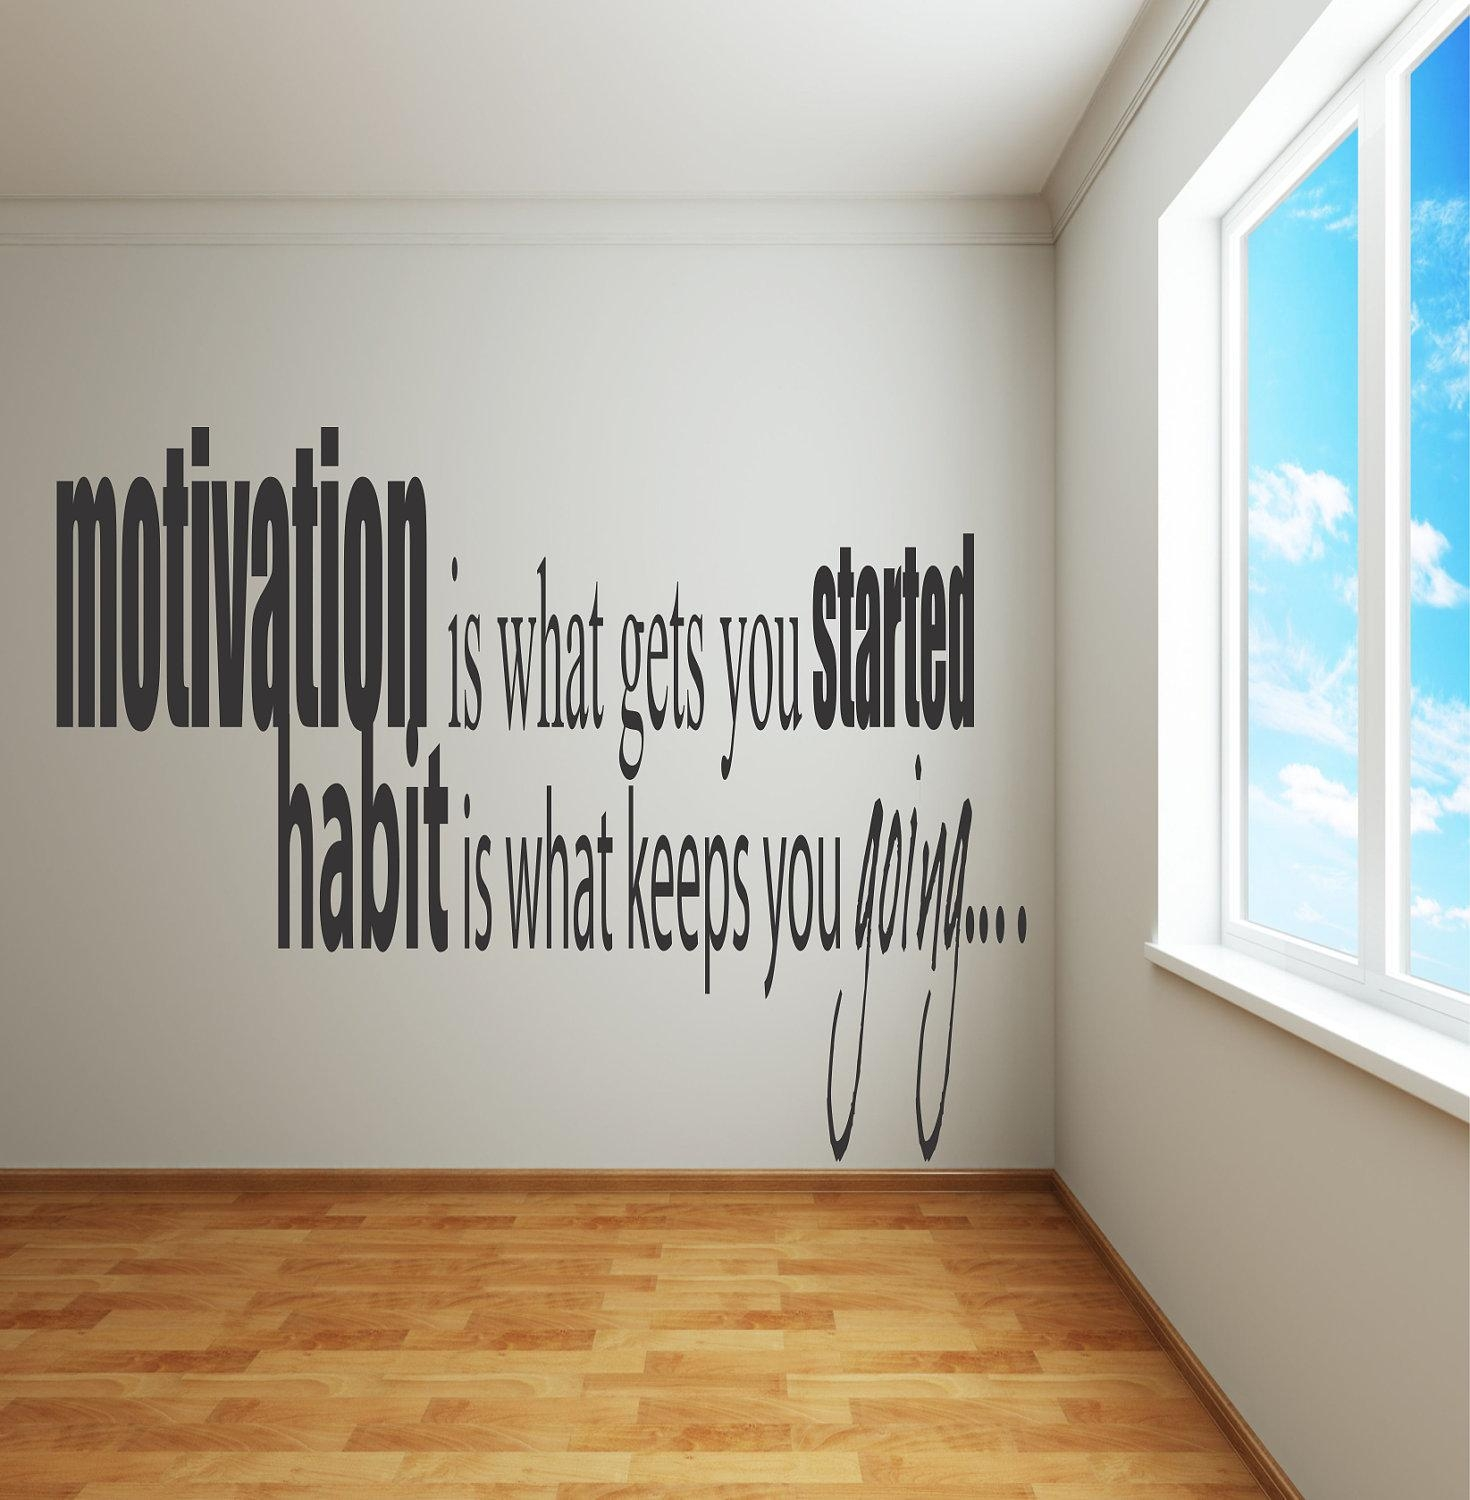 Adhesive Wall Decals Motivation Is What Gets You Pertaining To Inspirational Wall Decals For Office (View 10 of 20)